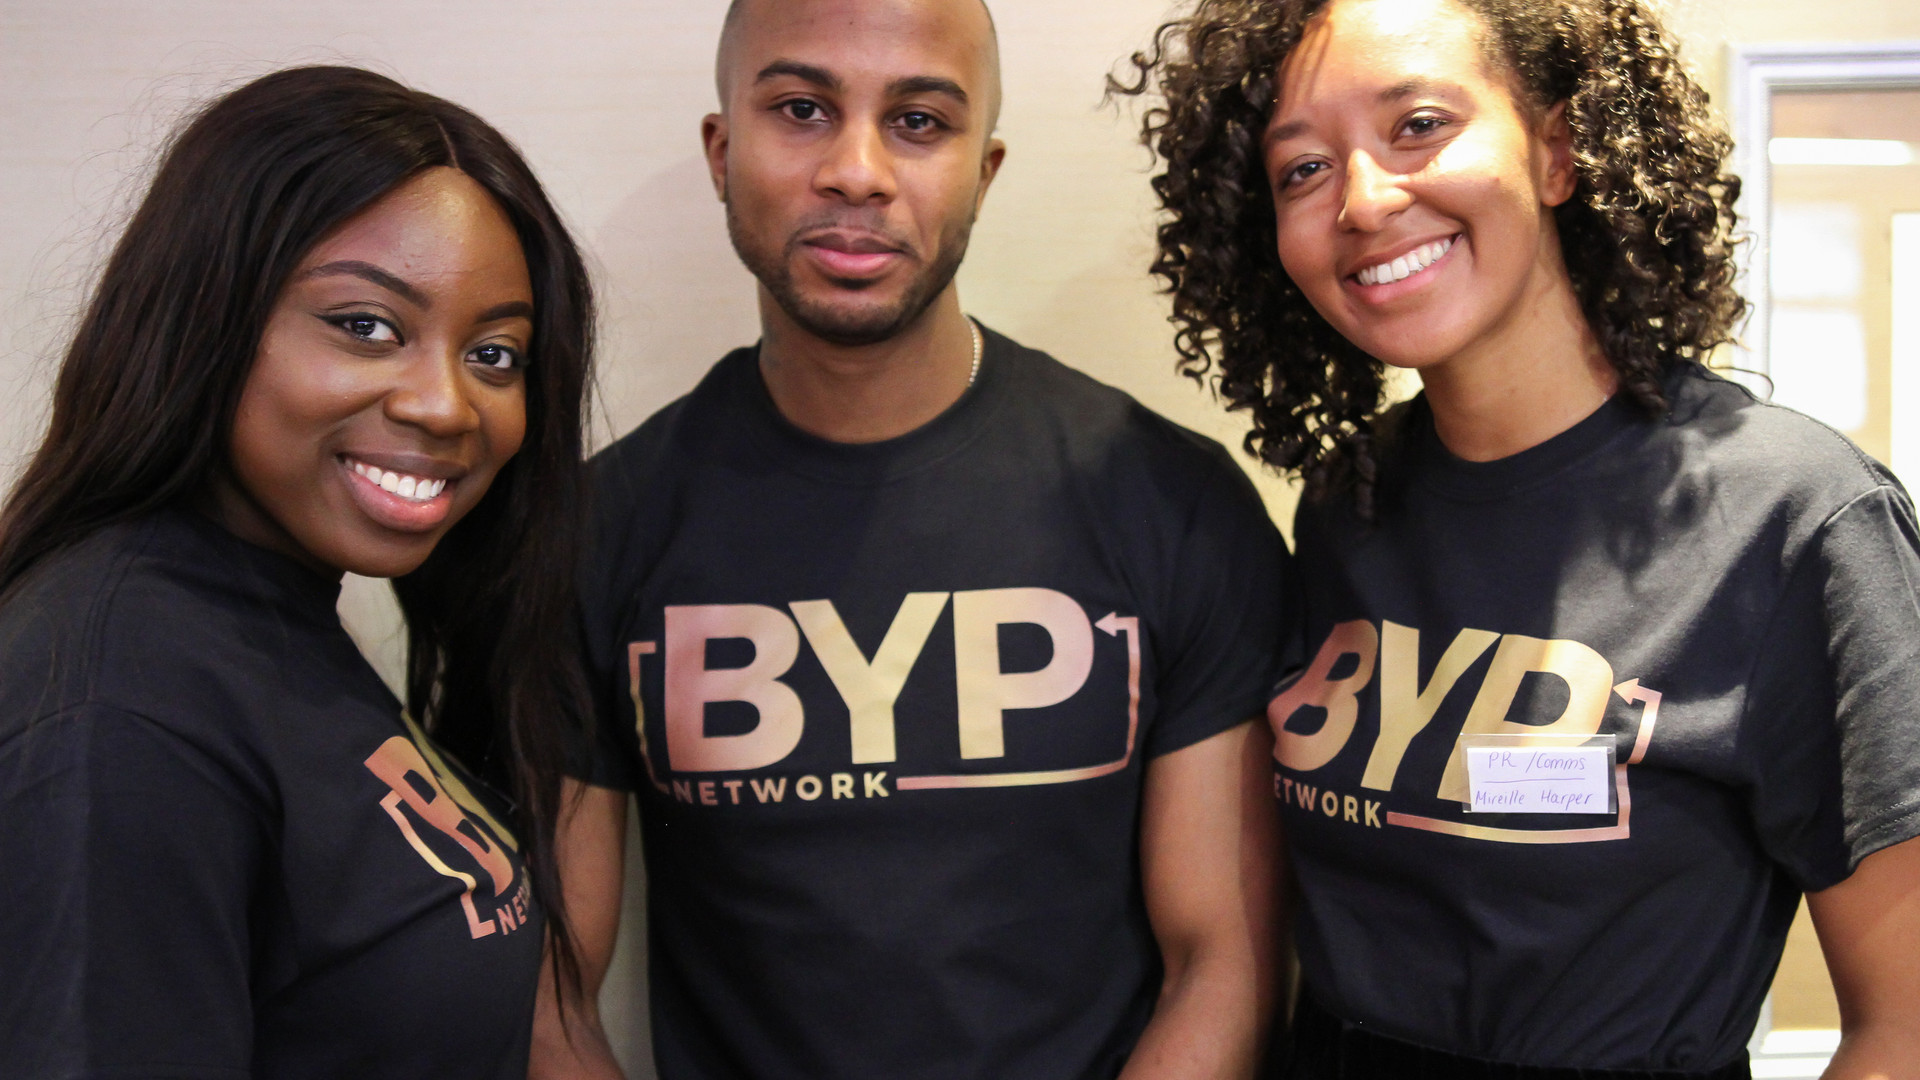 BYP networking -9065.jpg